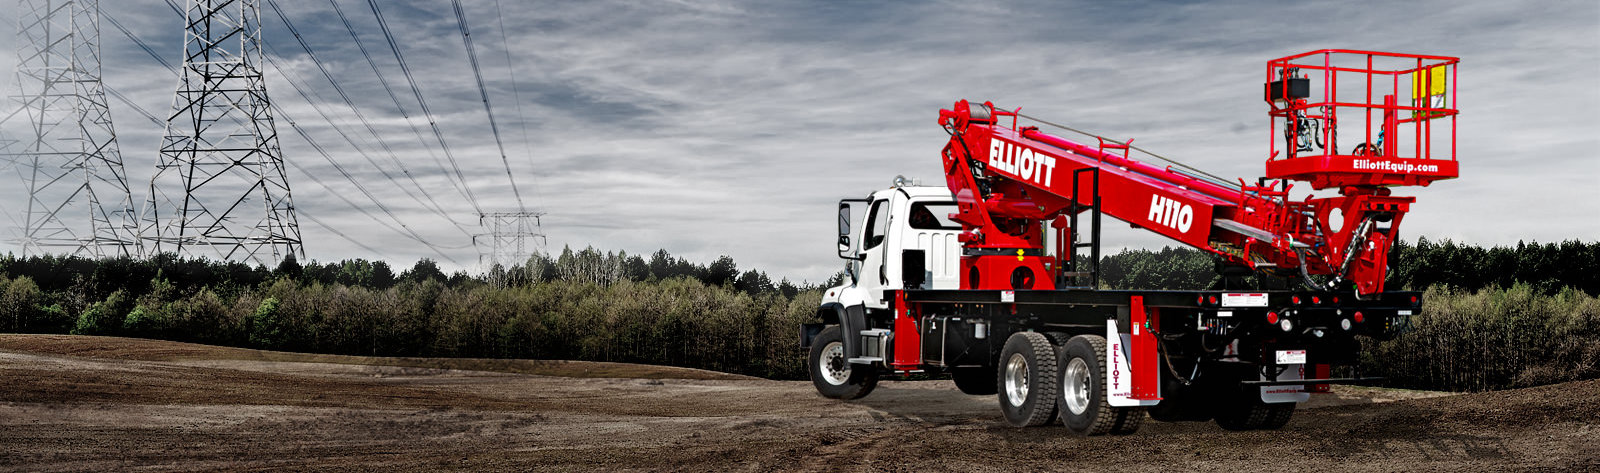 Aerial lifts & bucket trucks for sale or rent